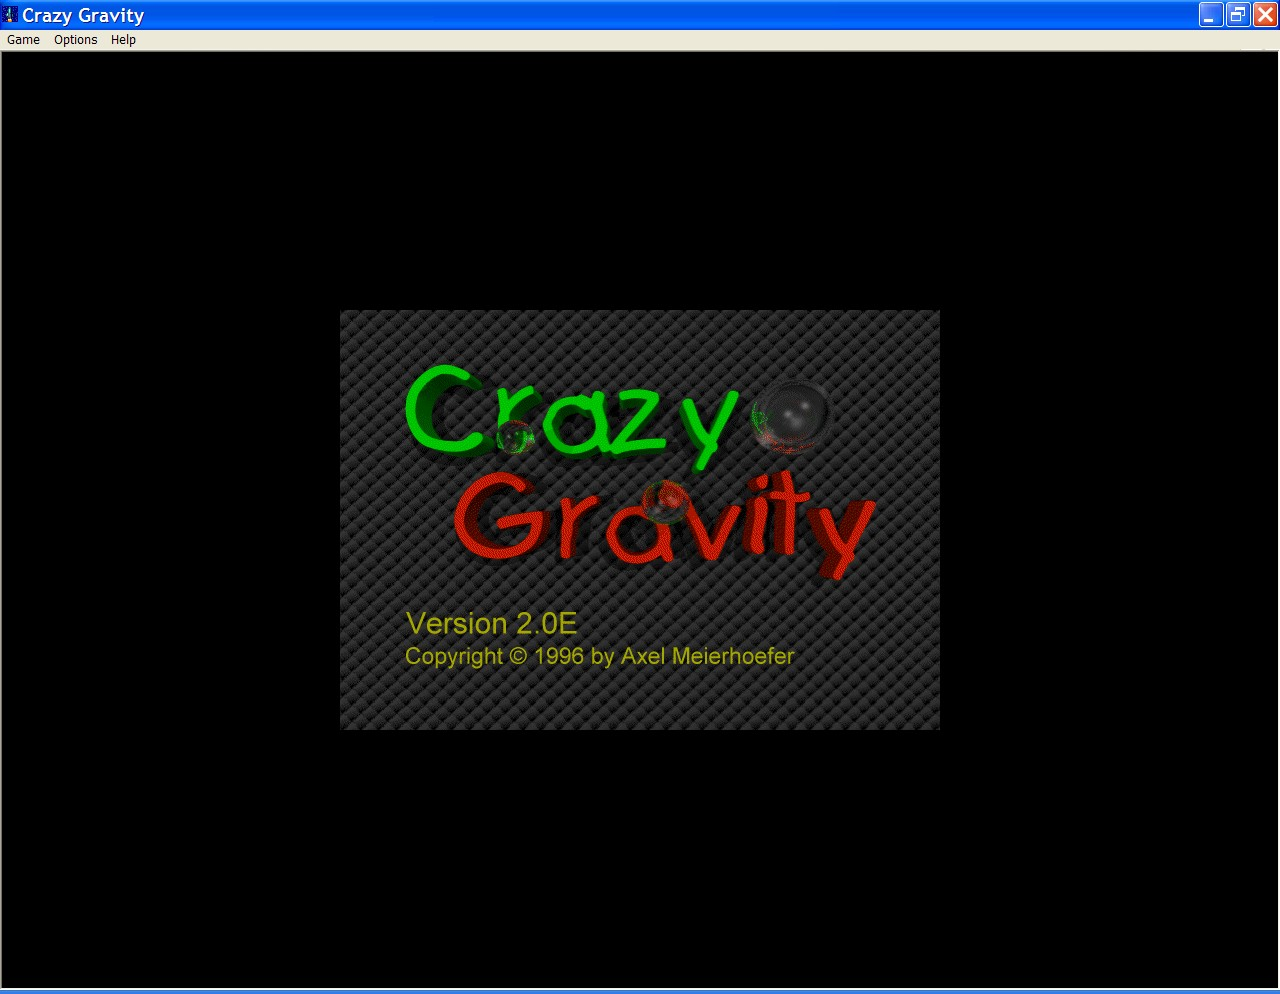 Crazy Gravity Windows The shareware version of the game loads with this screen in the background behind a couple of shareware ordering panes